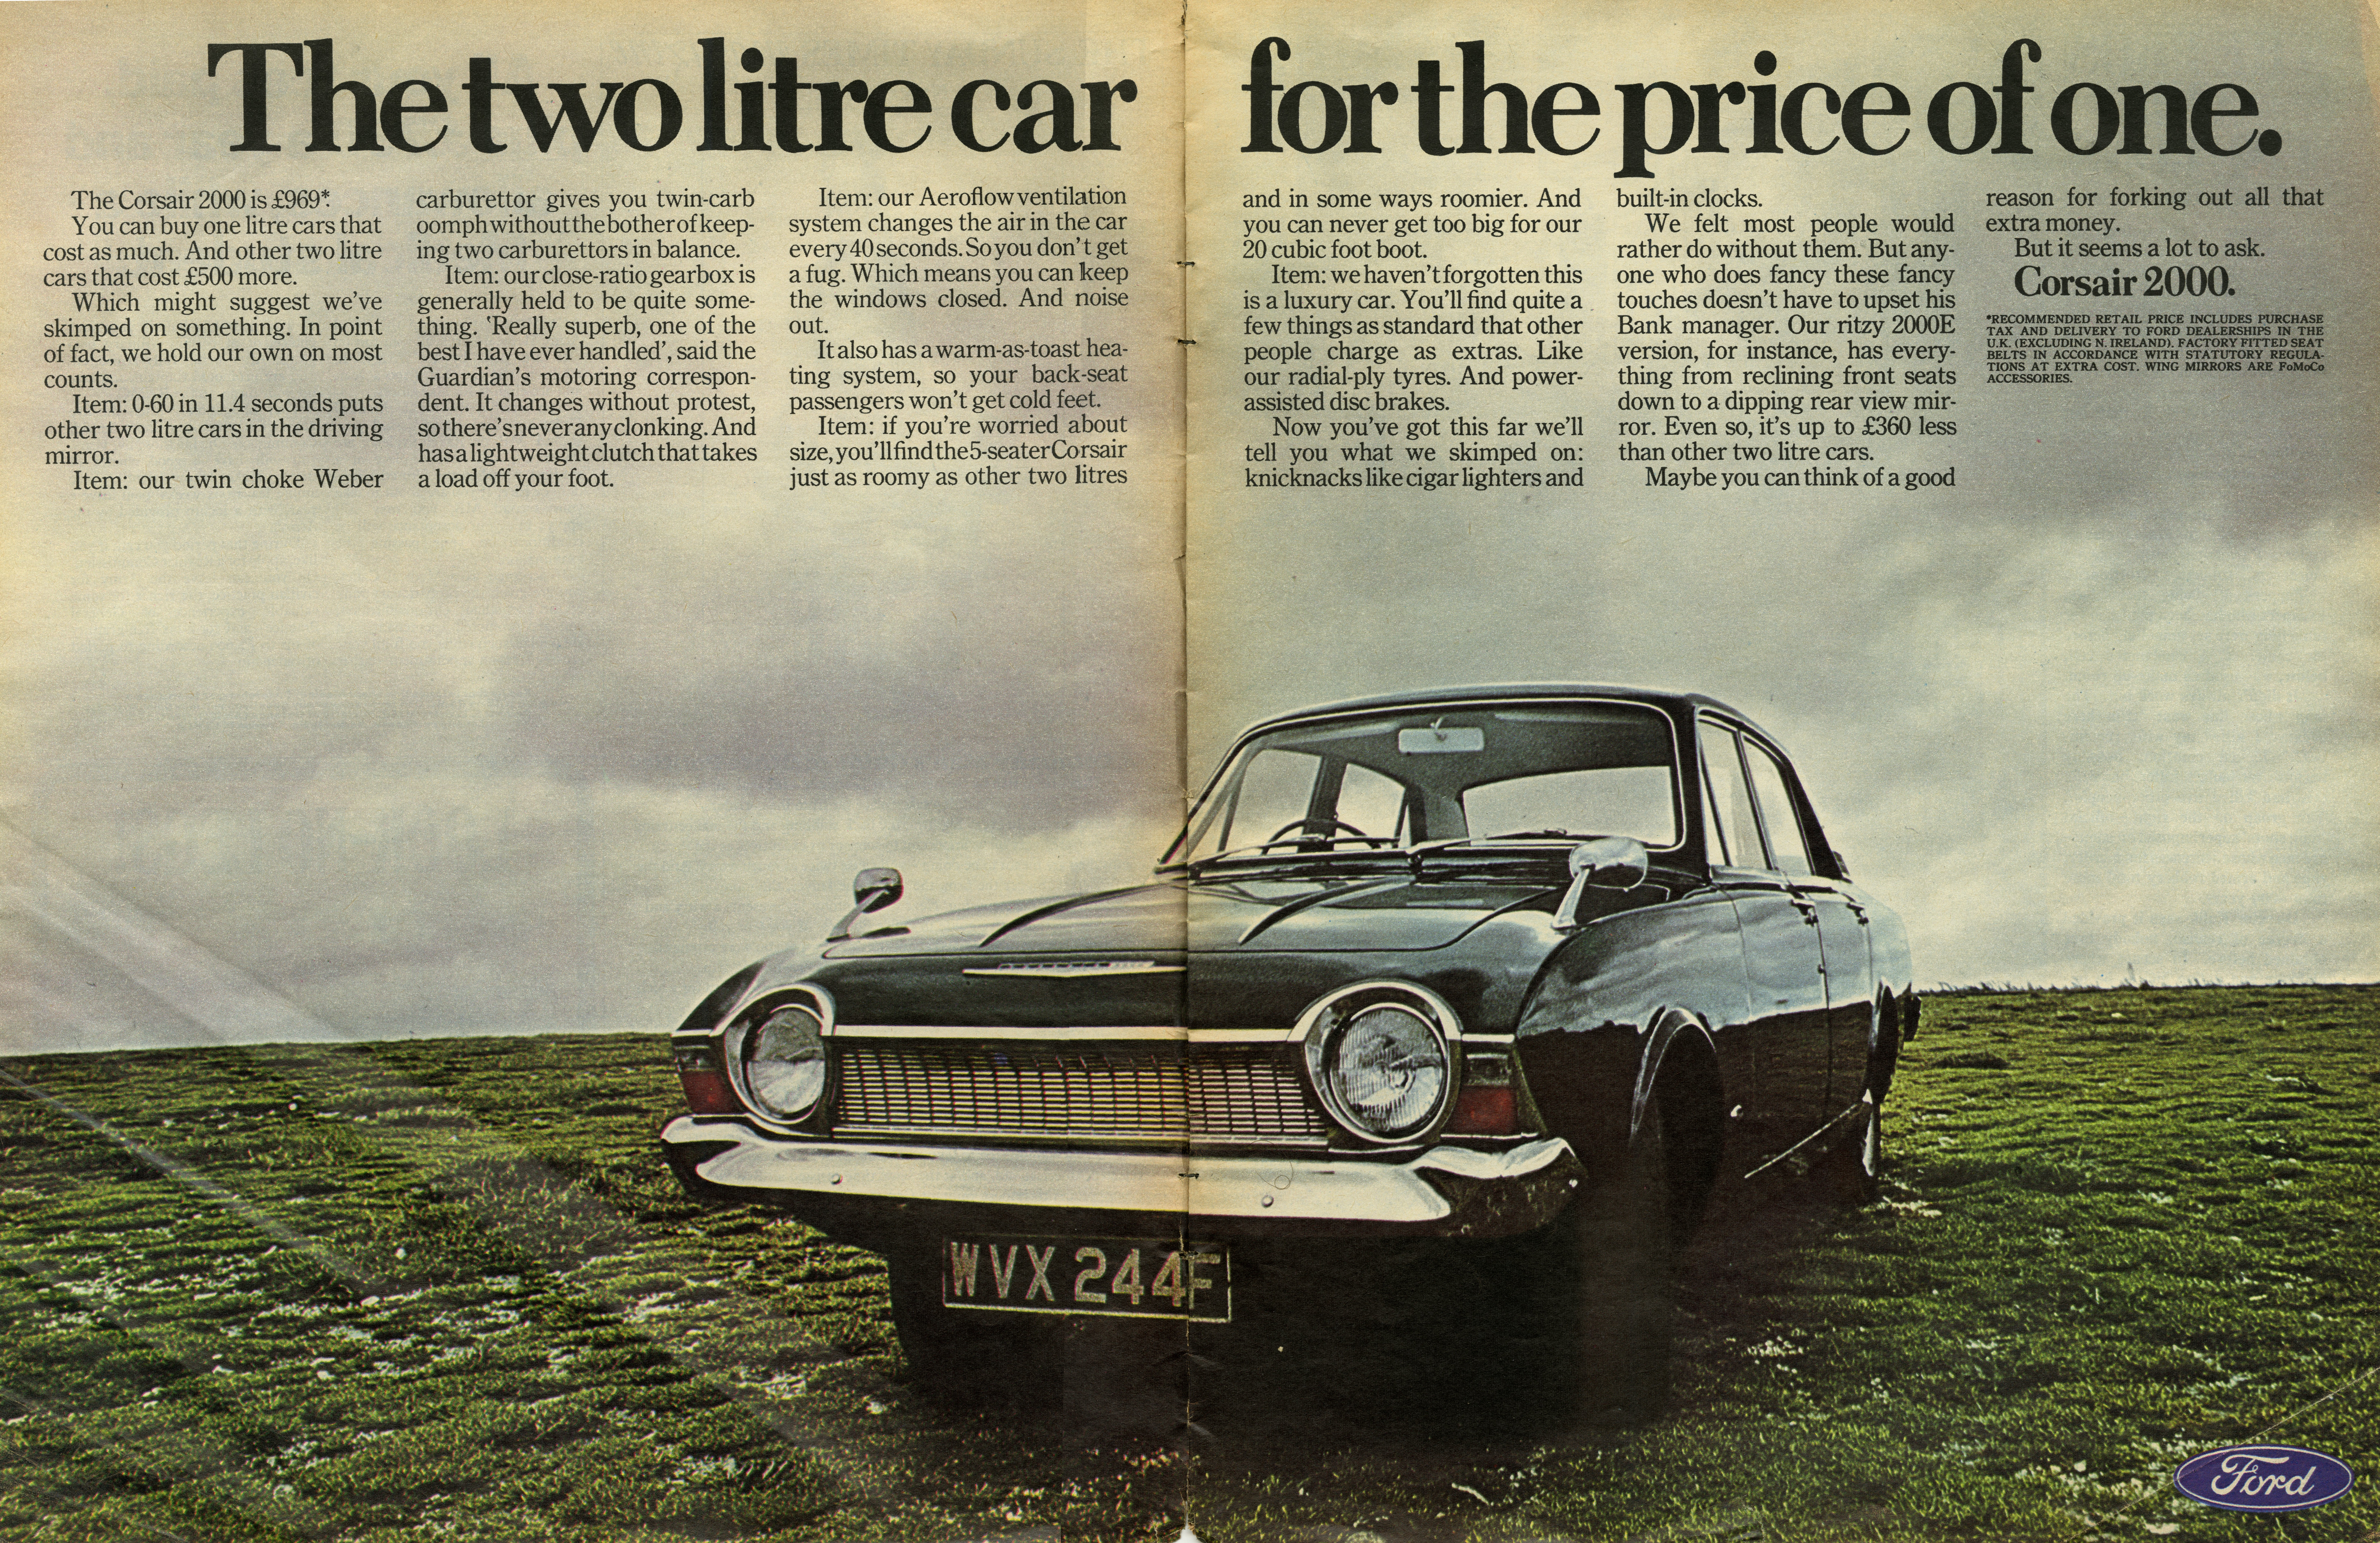 Max Forsythe, Ford 'Two For The Price', CDP--01